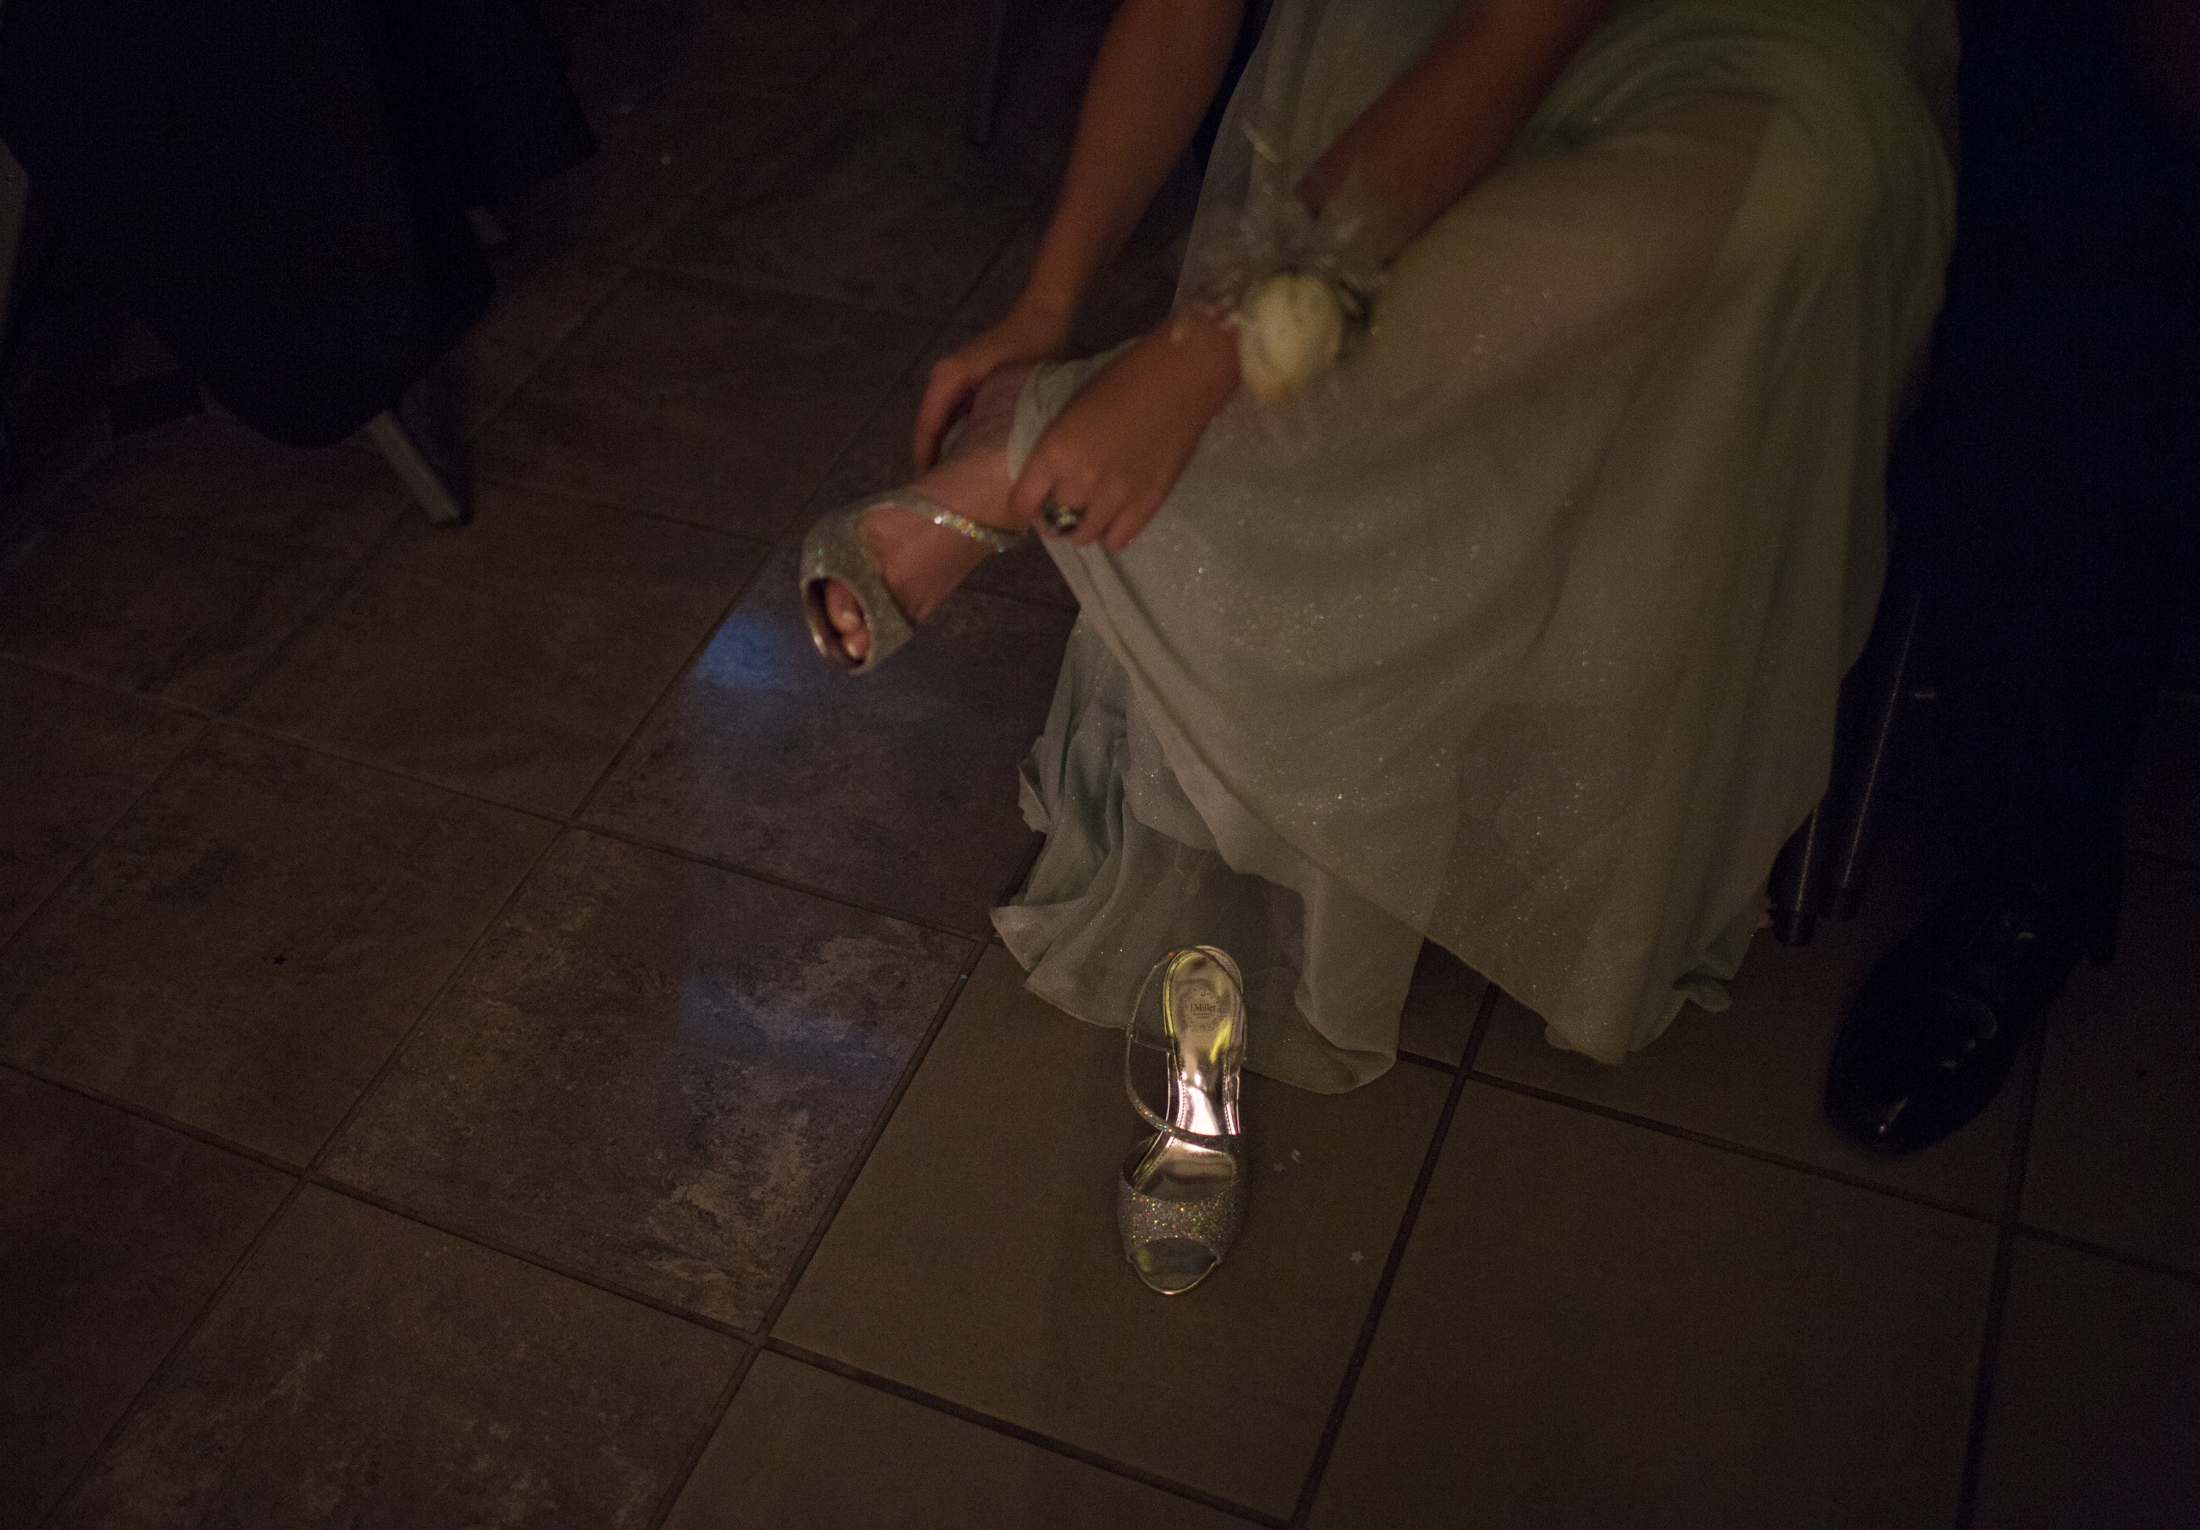 A girl puts on her shoes after taking them off to dance at the homecoming dance.